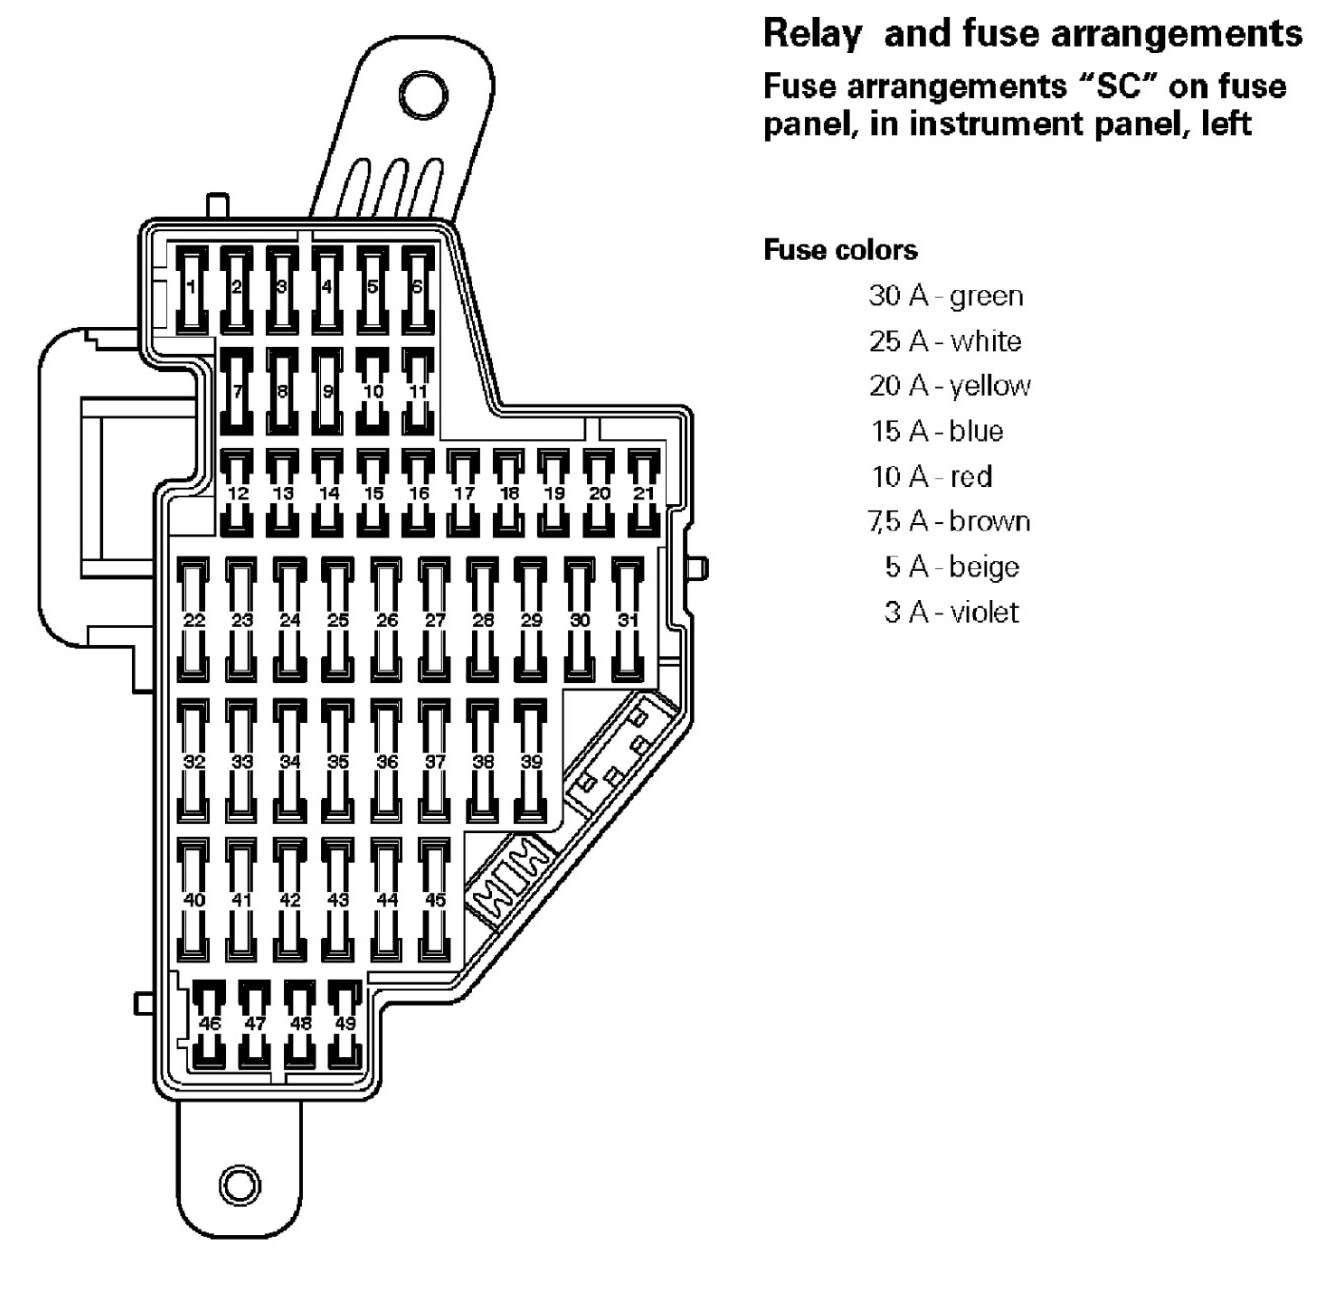 2006 Jetta Tdi Fuse Diagram - Today Diagram Database